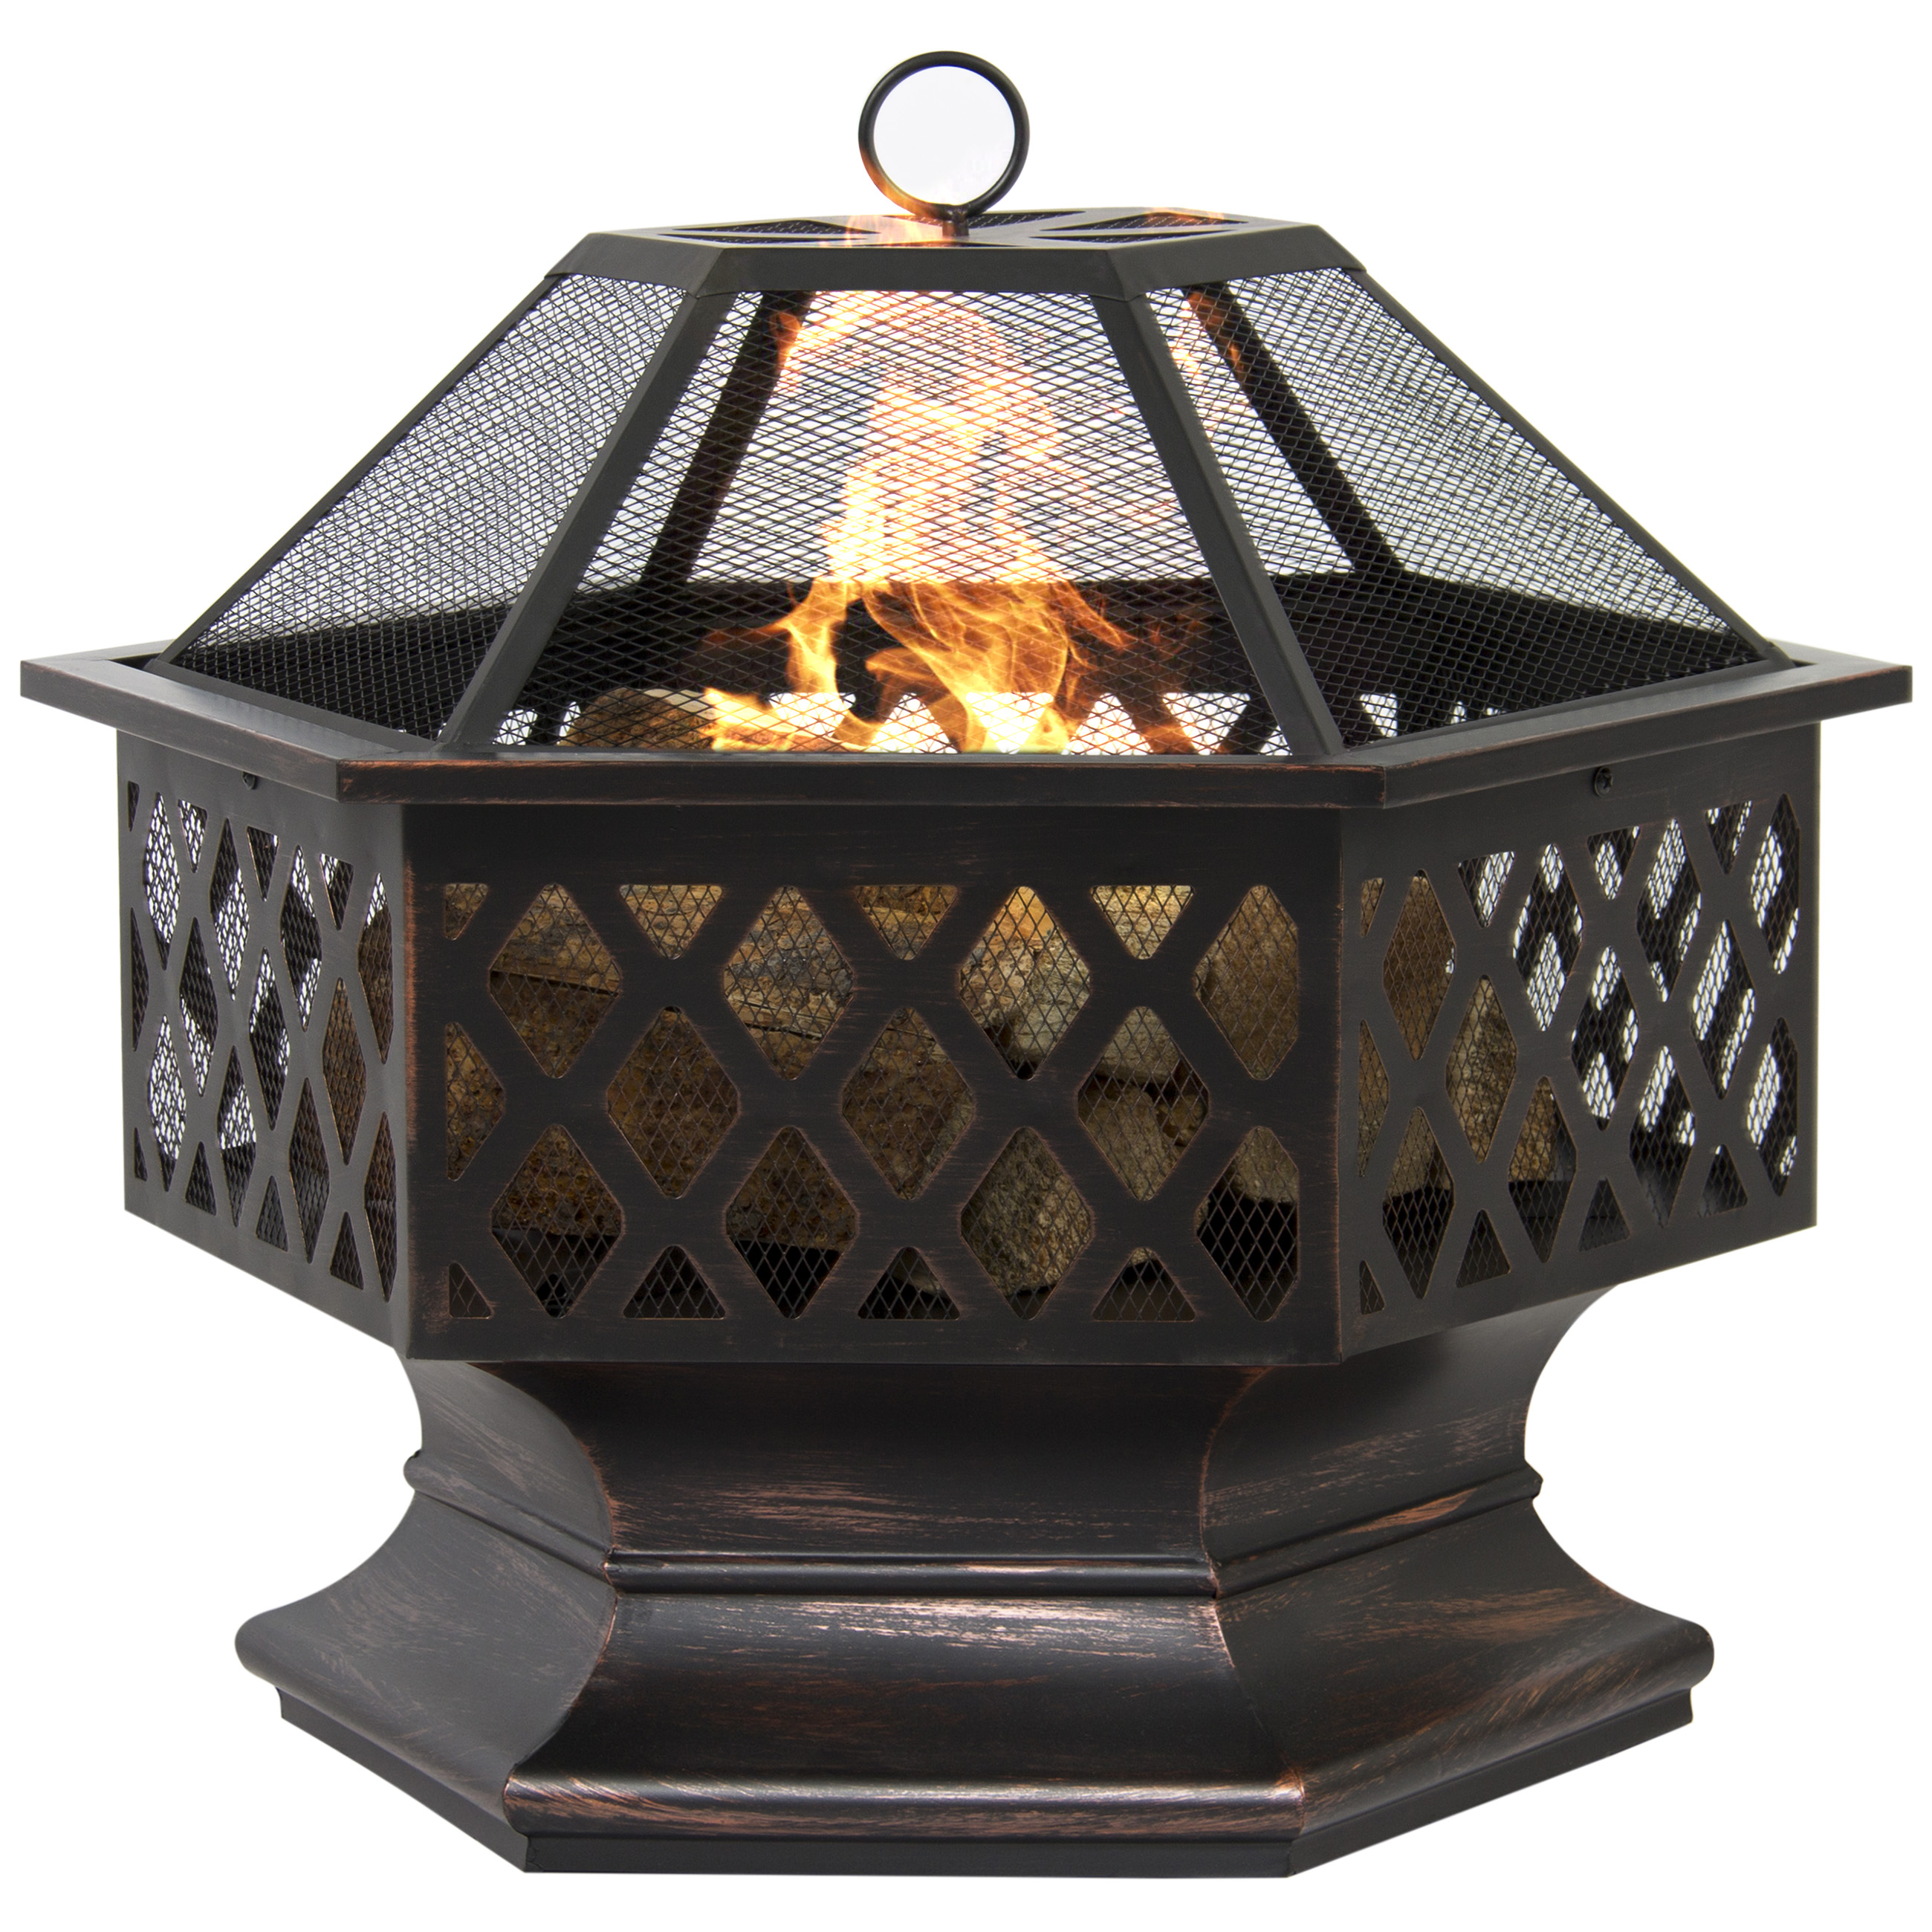 Best Choice Products 24in Hex Shaped Fire Pit For Outdoor Home Garden  Backyard   Black   Walmart.com